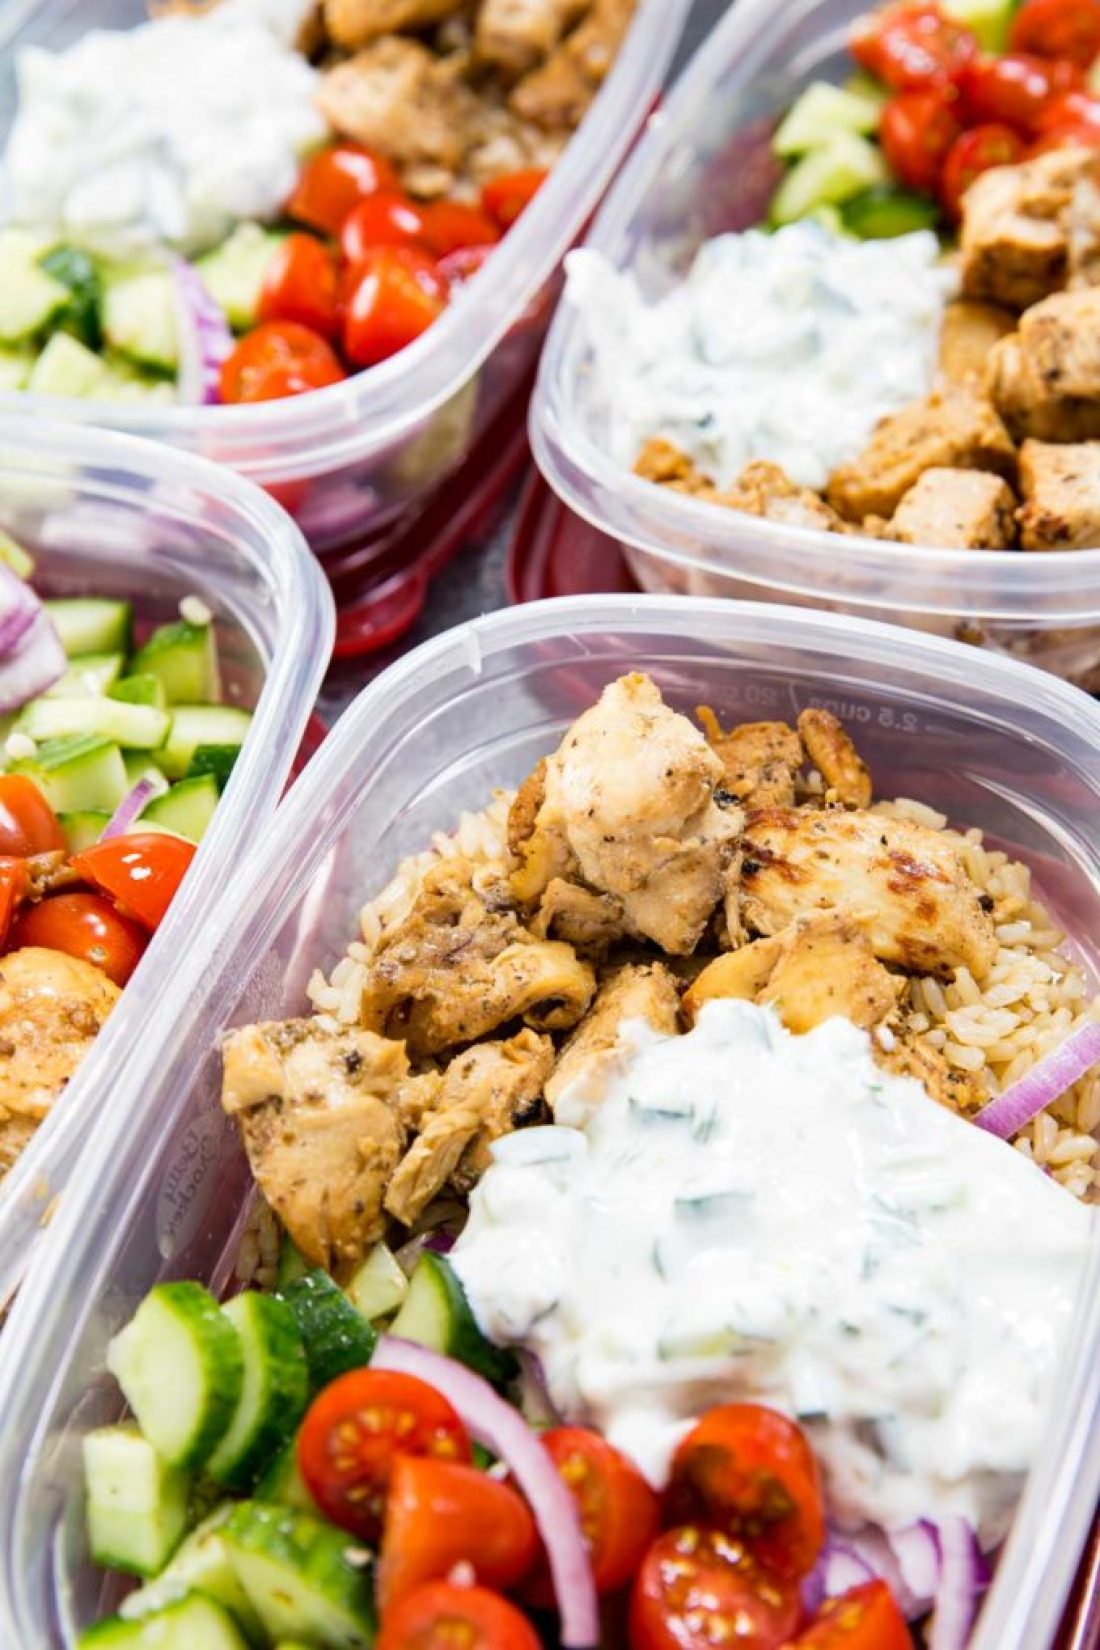 Healthy Greek Chicken Recipes: Insanely delicious Greek Chicken bowl recipes. Greek Marinated Chicken, cucumber salad, tzatziki, red onion, and tomato, served over brown rice. These are quick and easy to make, and will help you be set for the week.